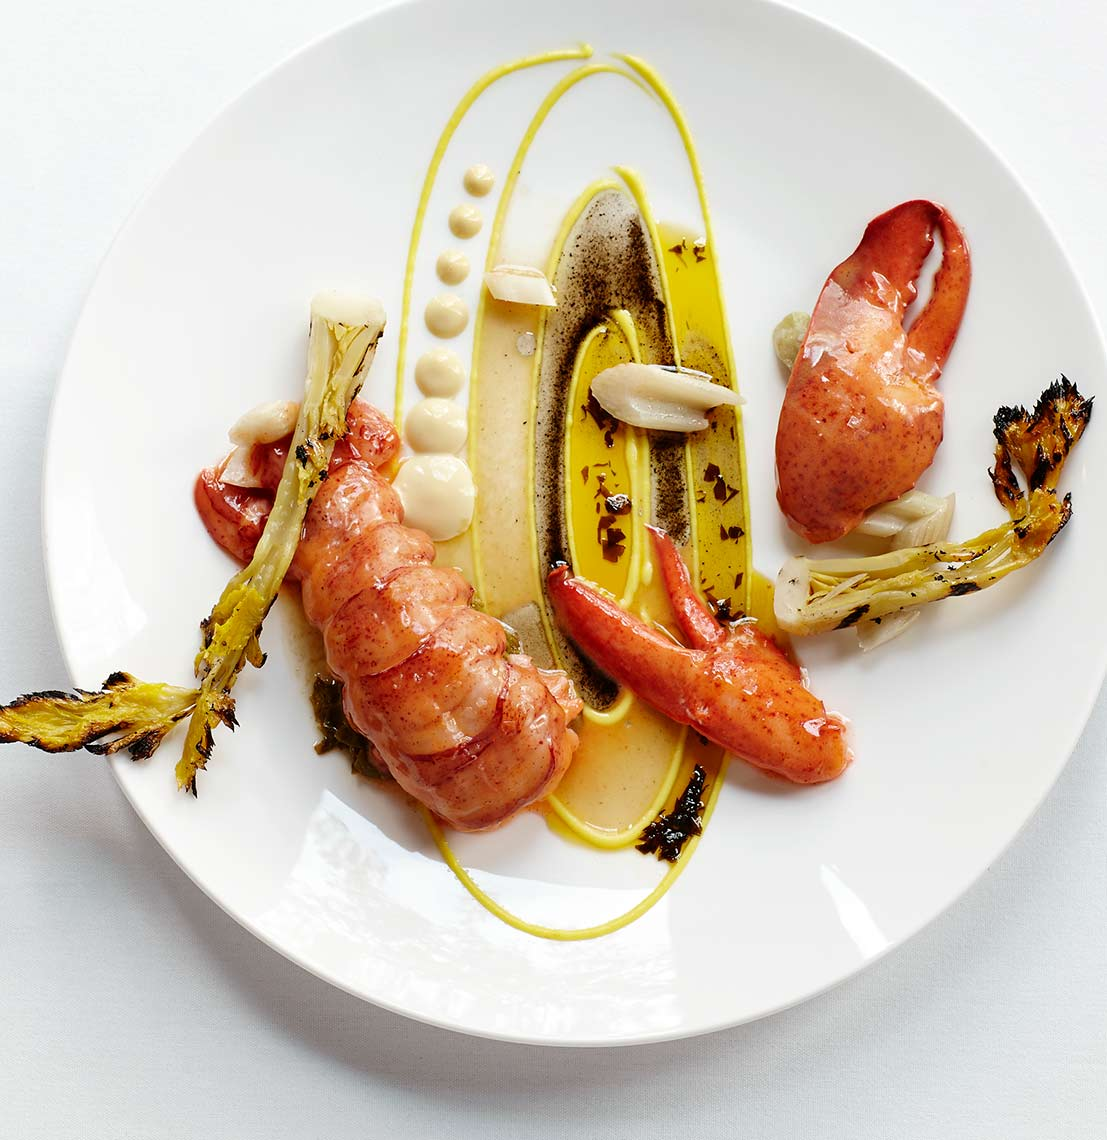 Food photograph showing lobster.